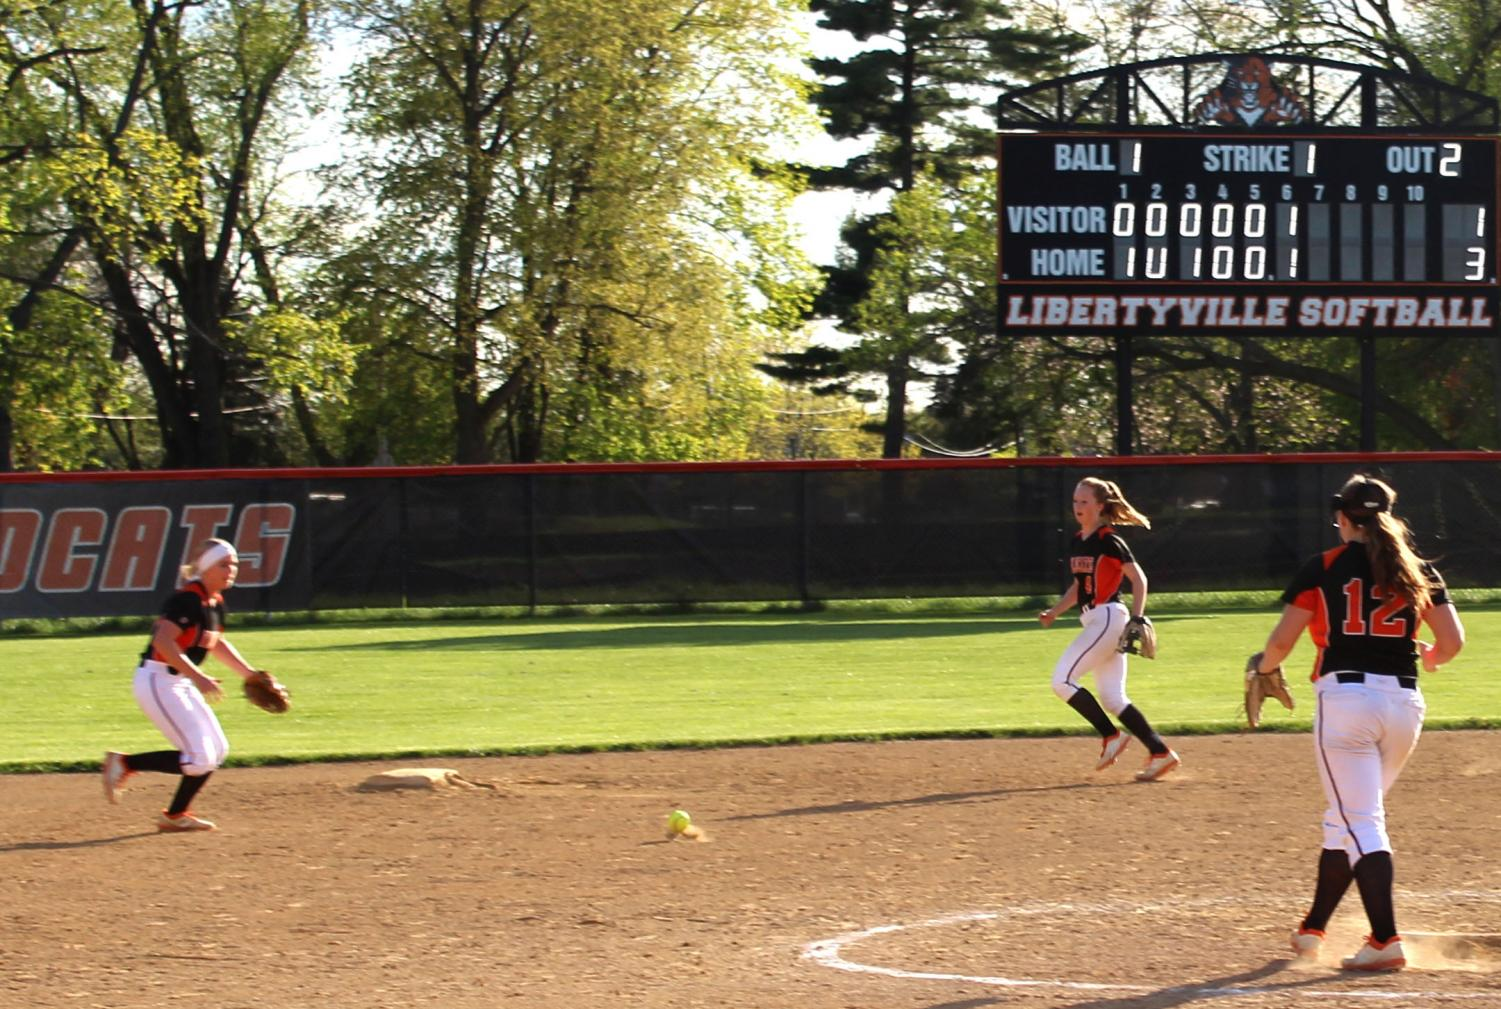 Shortstop+Aliya+Haddon+%28a+DOI+staff+member%29+charges+at+the+groundball+to+get+the+final+out+of+the+seventh+inning%2C+ending+the+game.+